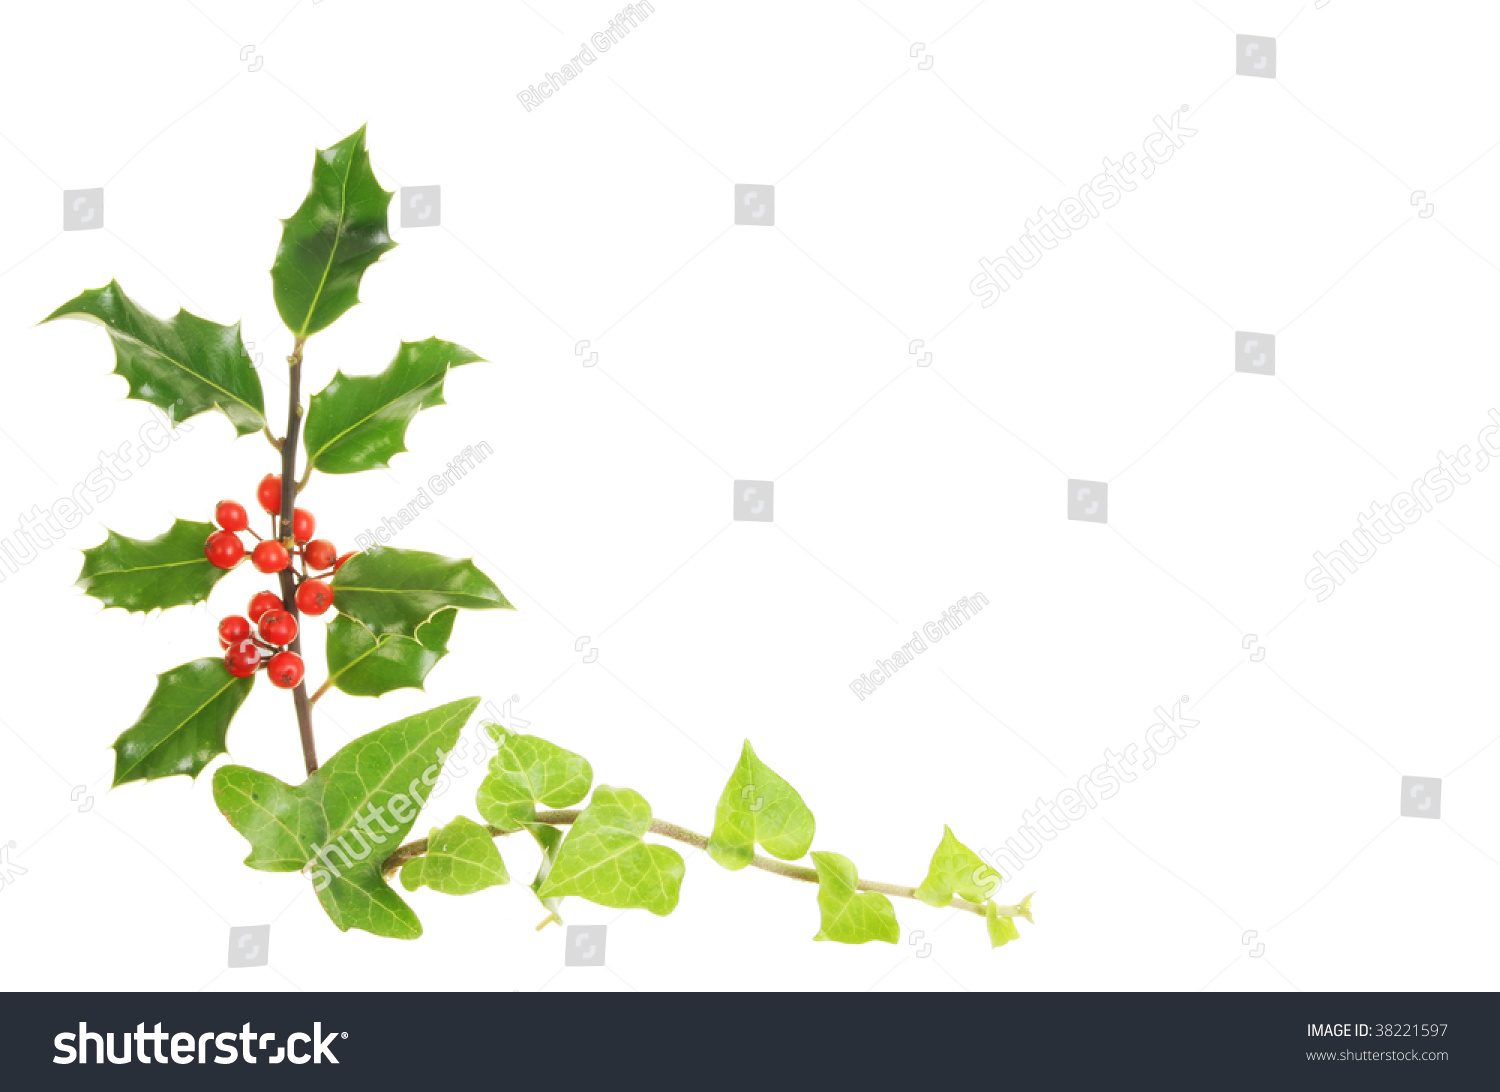 Holly and ivy christmas border stock photo 38221597 shutterstock for Holly and ivy border